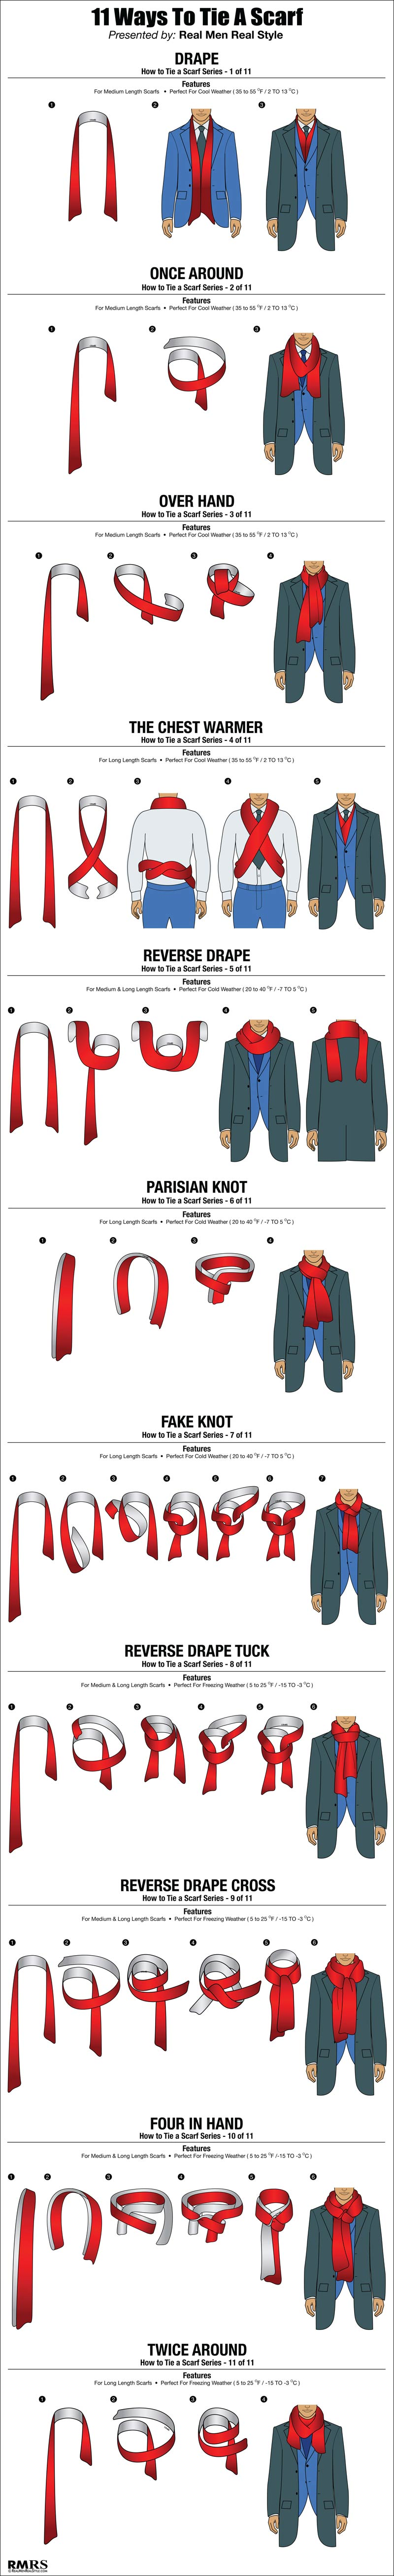 11 ways to tie a scarf in one chart huffpost